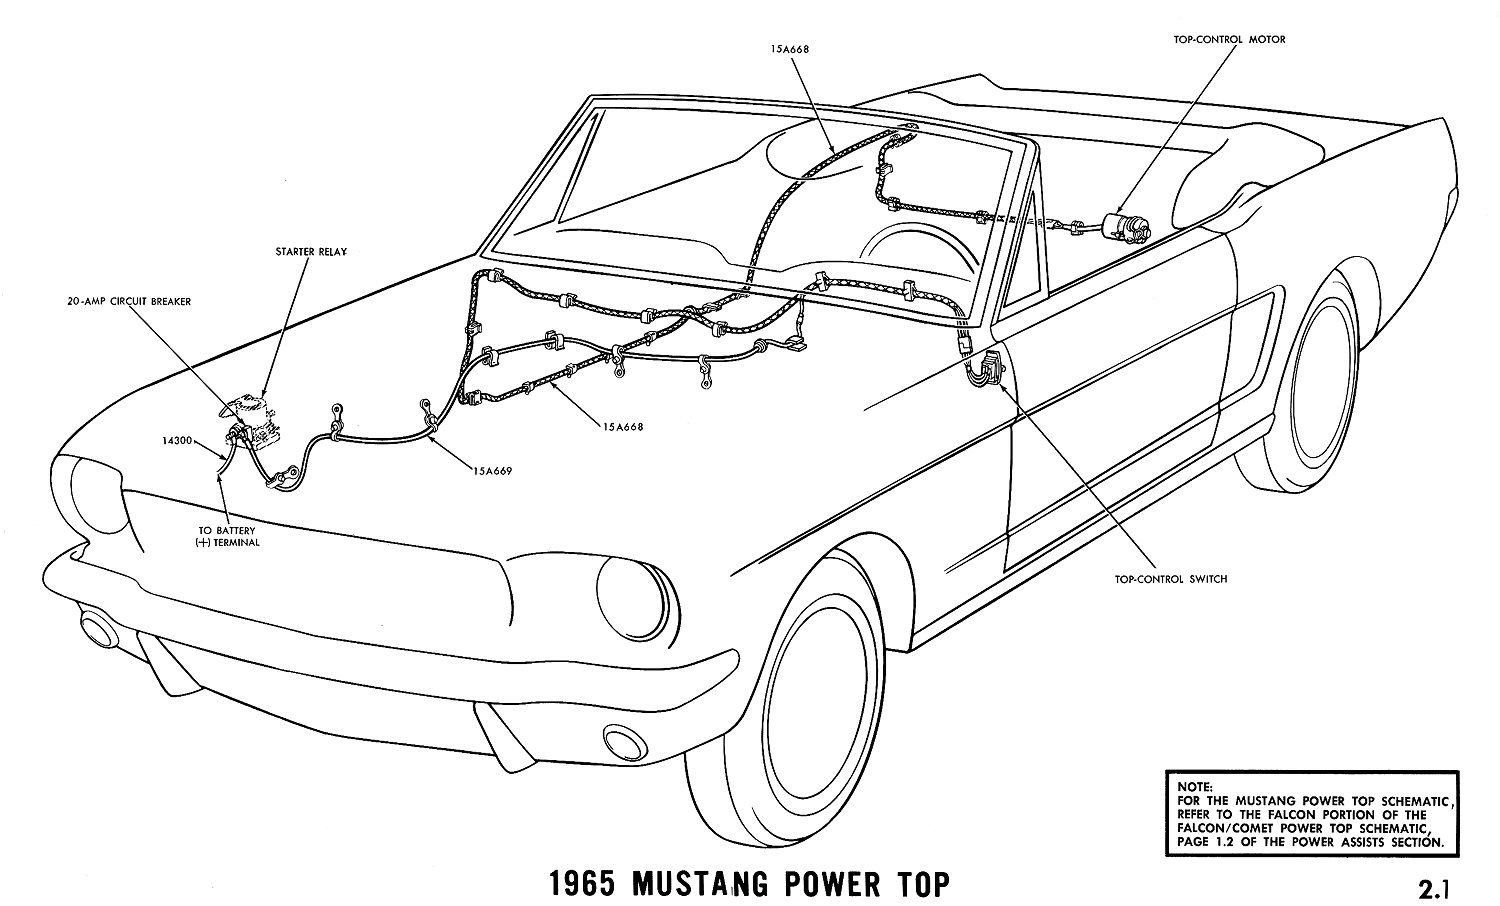 1965j 1965 mustang wiring diagrams average joe restoration 1966 mustang wiring harness at readyjetset.co